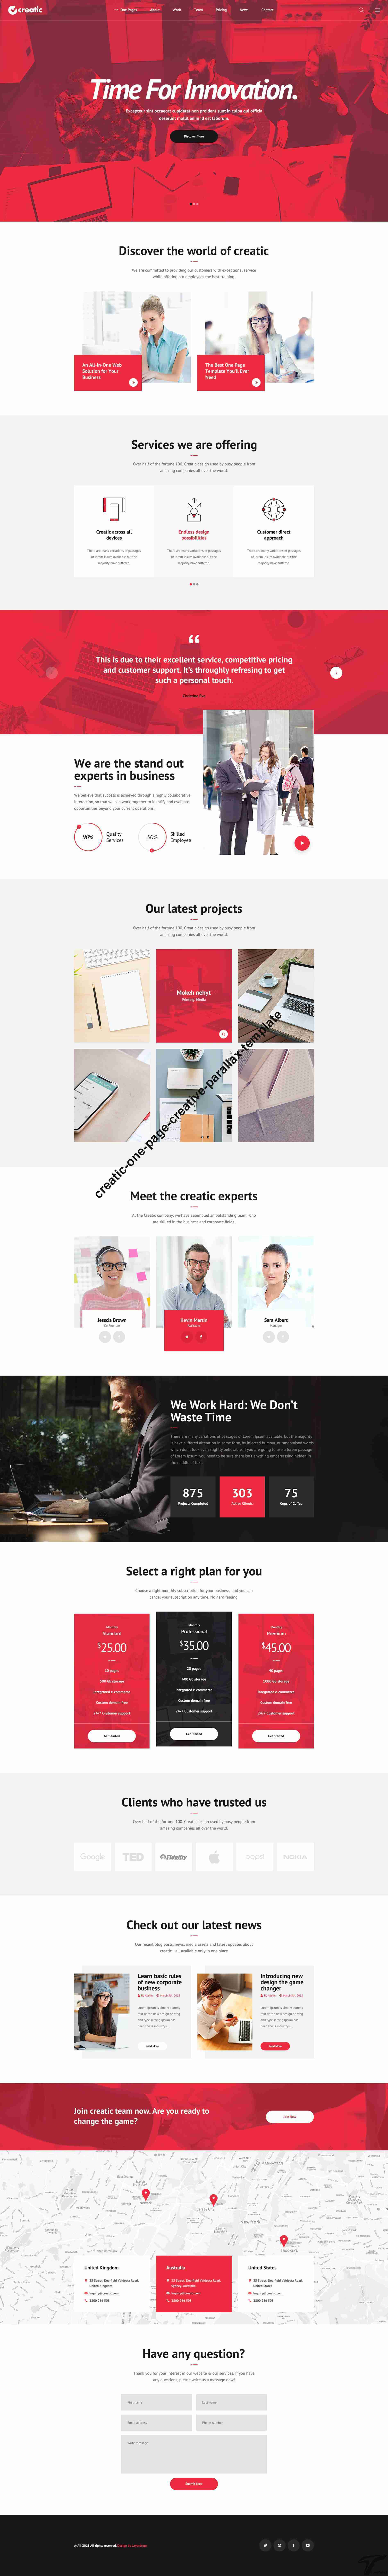 https://images.besthemes.com/images/h1_creatic-one-page-creative-parallax-template5-_-244672768/previews/05_Home.jpg